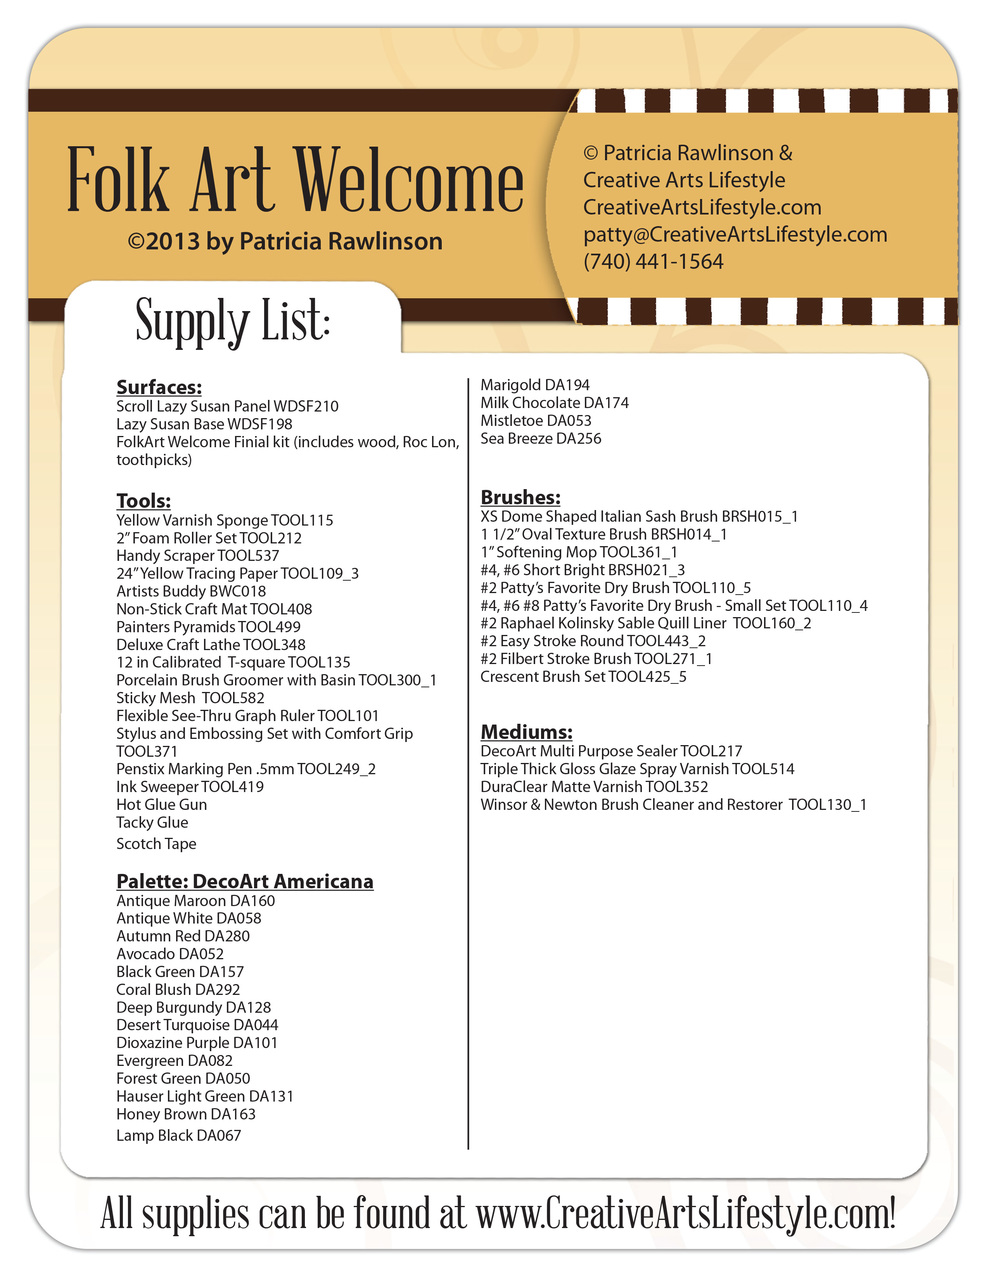 FolkArt Welcome Pattern Packet - Patricia Rawlinson